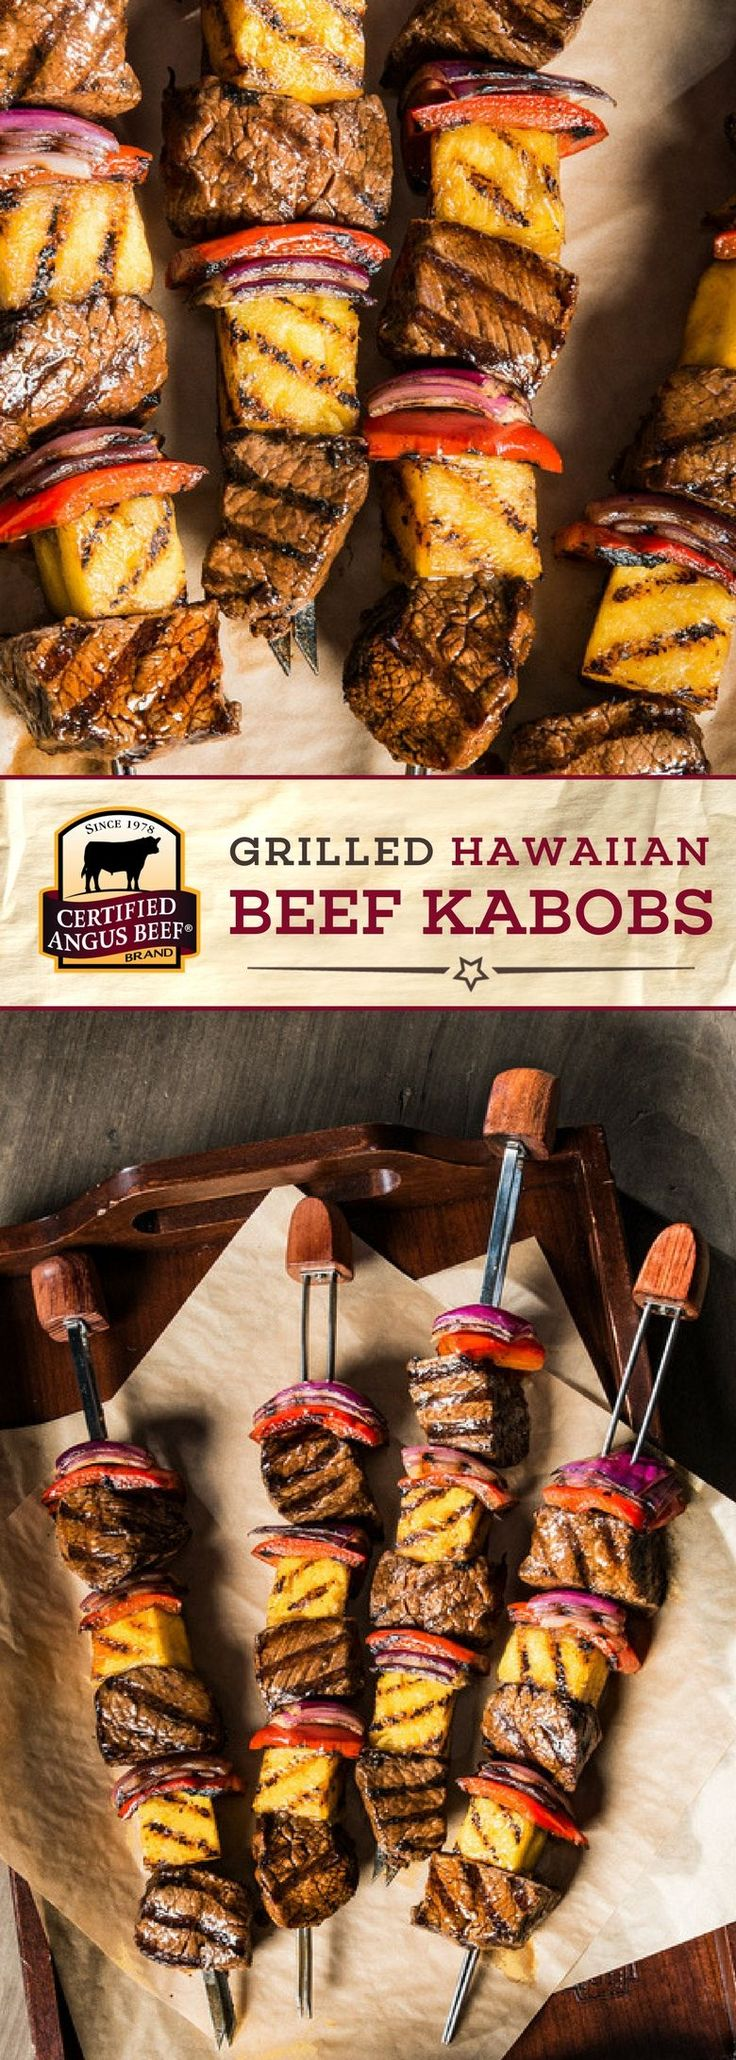 Make these Grilled Hawaiian Beef Kabobs with Certified Angus Beef®️ brand top sirloin steak, and you'll be hooked! This easy recipe uses the BEST top sirloin steak, cubed and marinated in a TASTY blend of orange juice concentrate, soy sauce, molasses, vinegar and ginger. Skewered with onion, red pepper, and pineapple, this delicious beef recipe is perfect for the grill! #bestangusbeef #certifiedangusbeef #beefrecipe #beefkabob #grilling